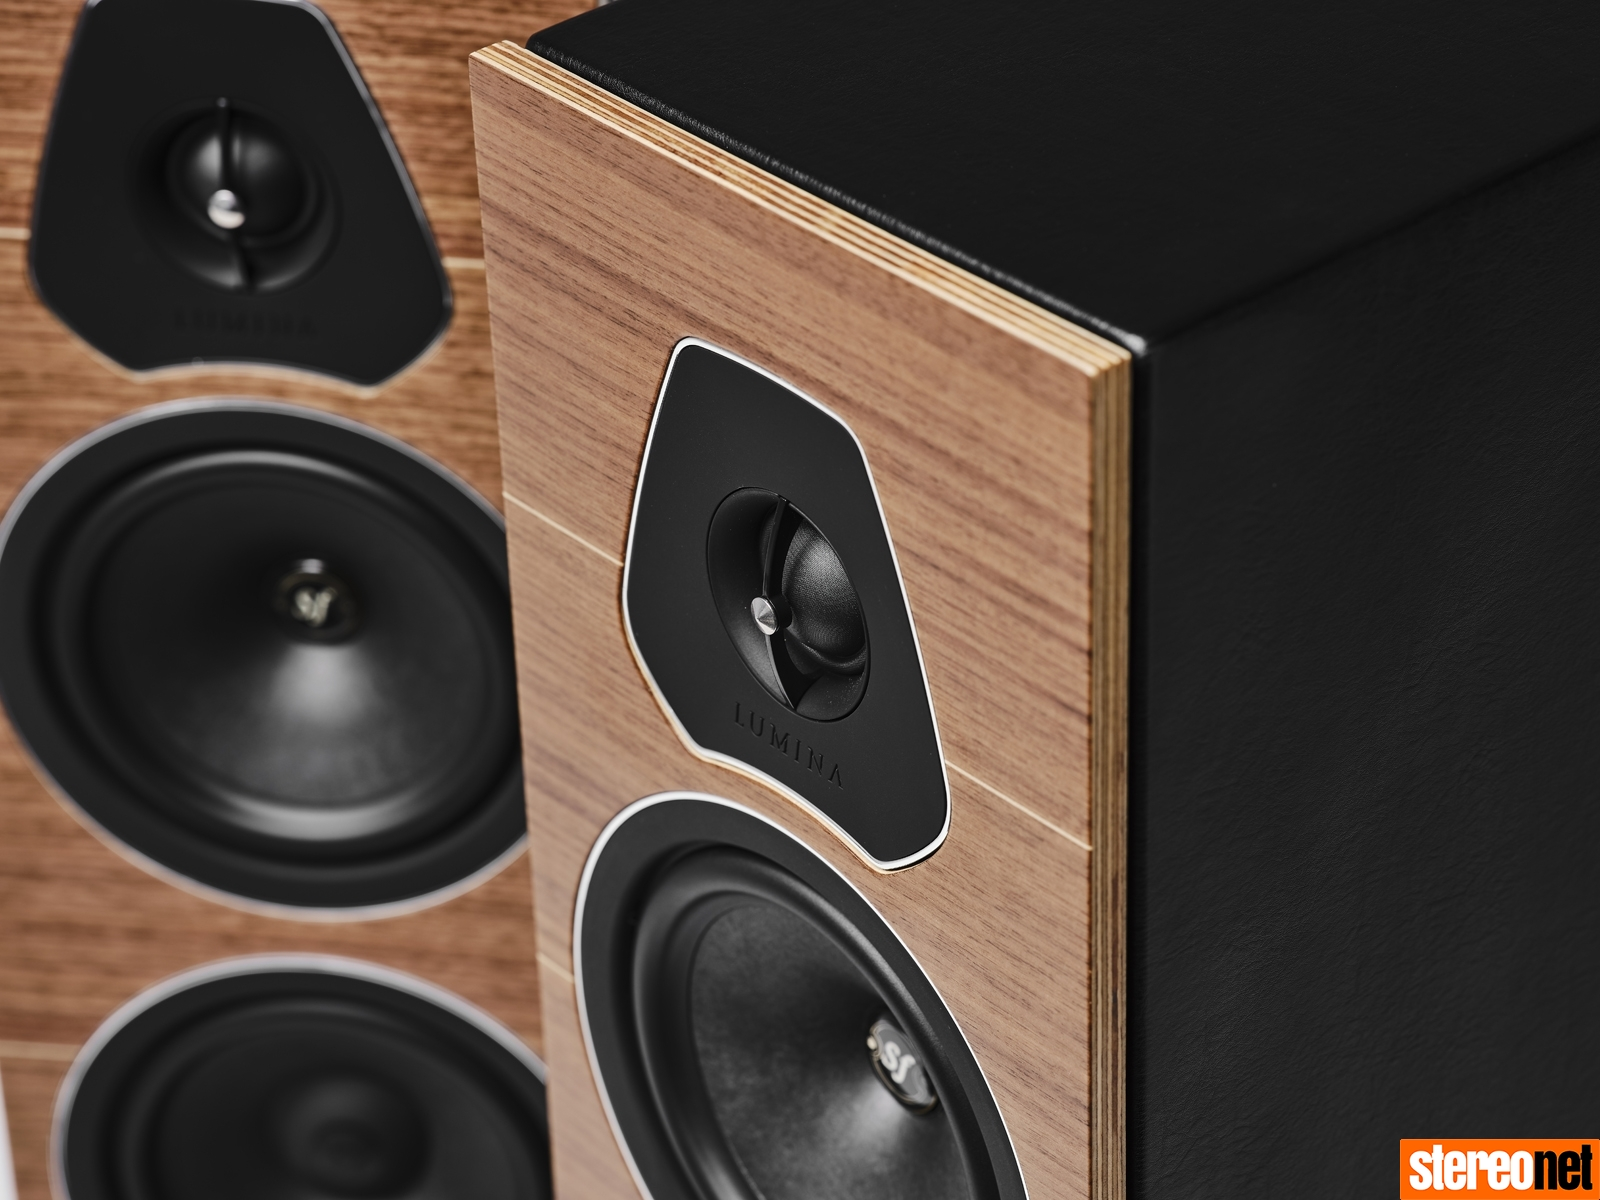 Sonus faber Lumina III review